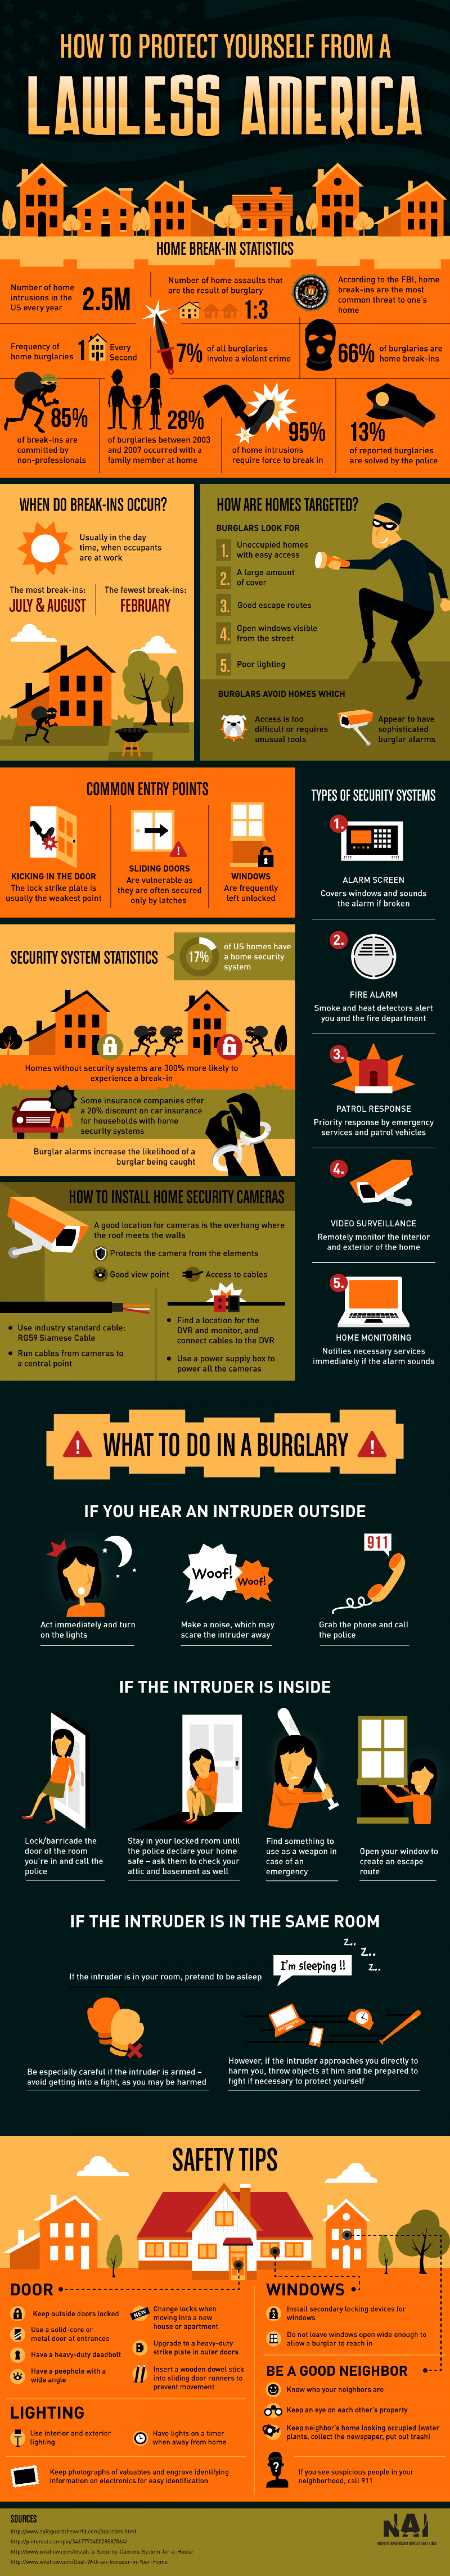 How To Protect Yourself From A Lawless America Infographic